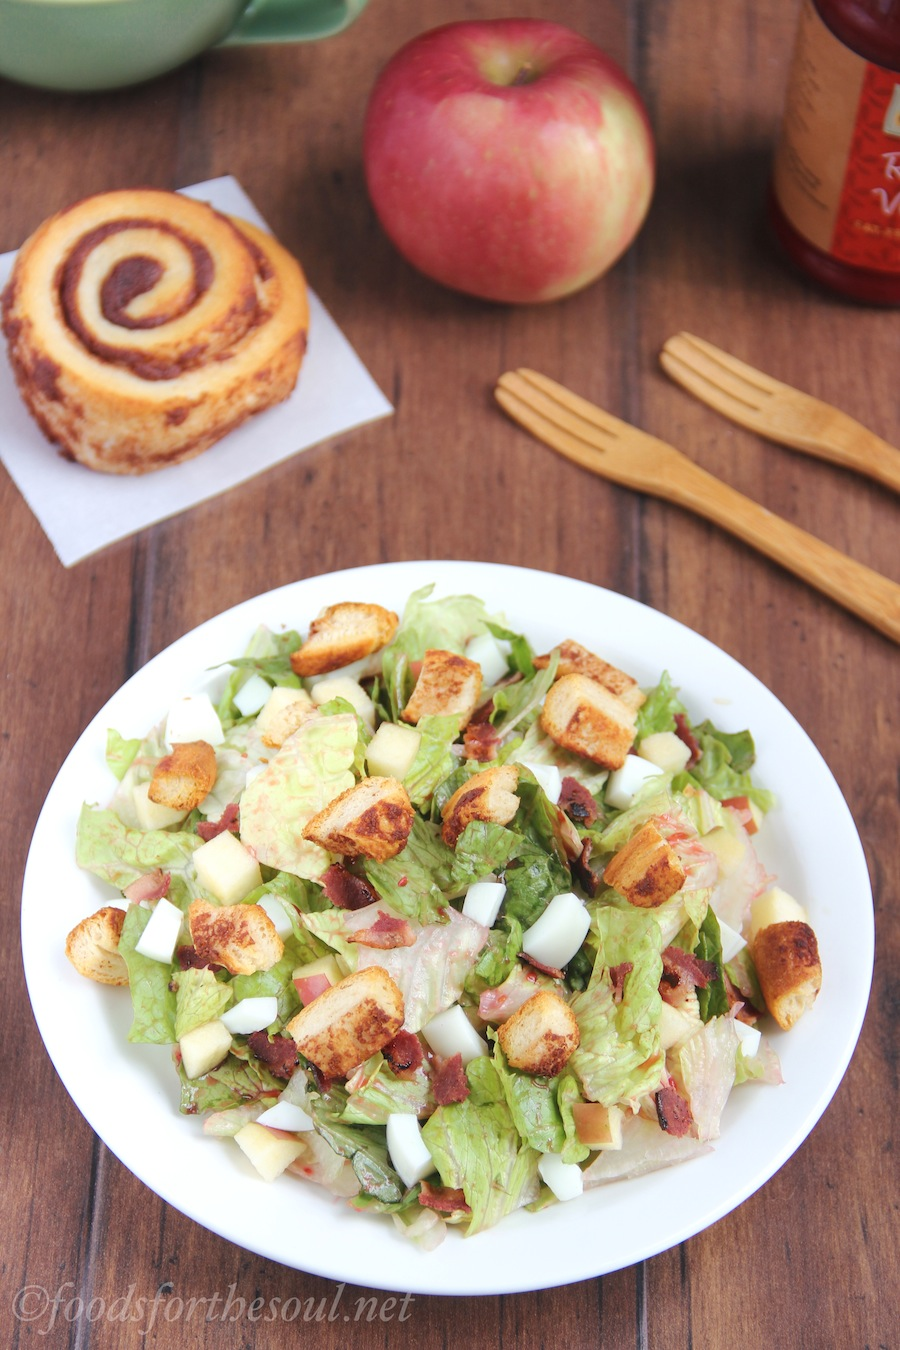 Cinnamon Roll Breakfast Salad